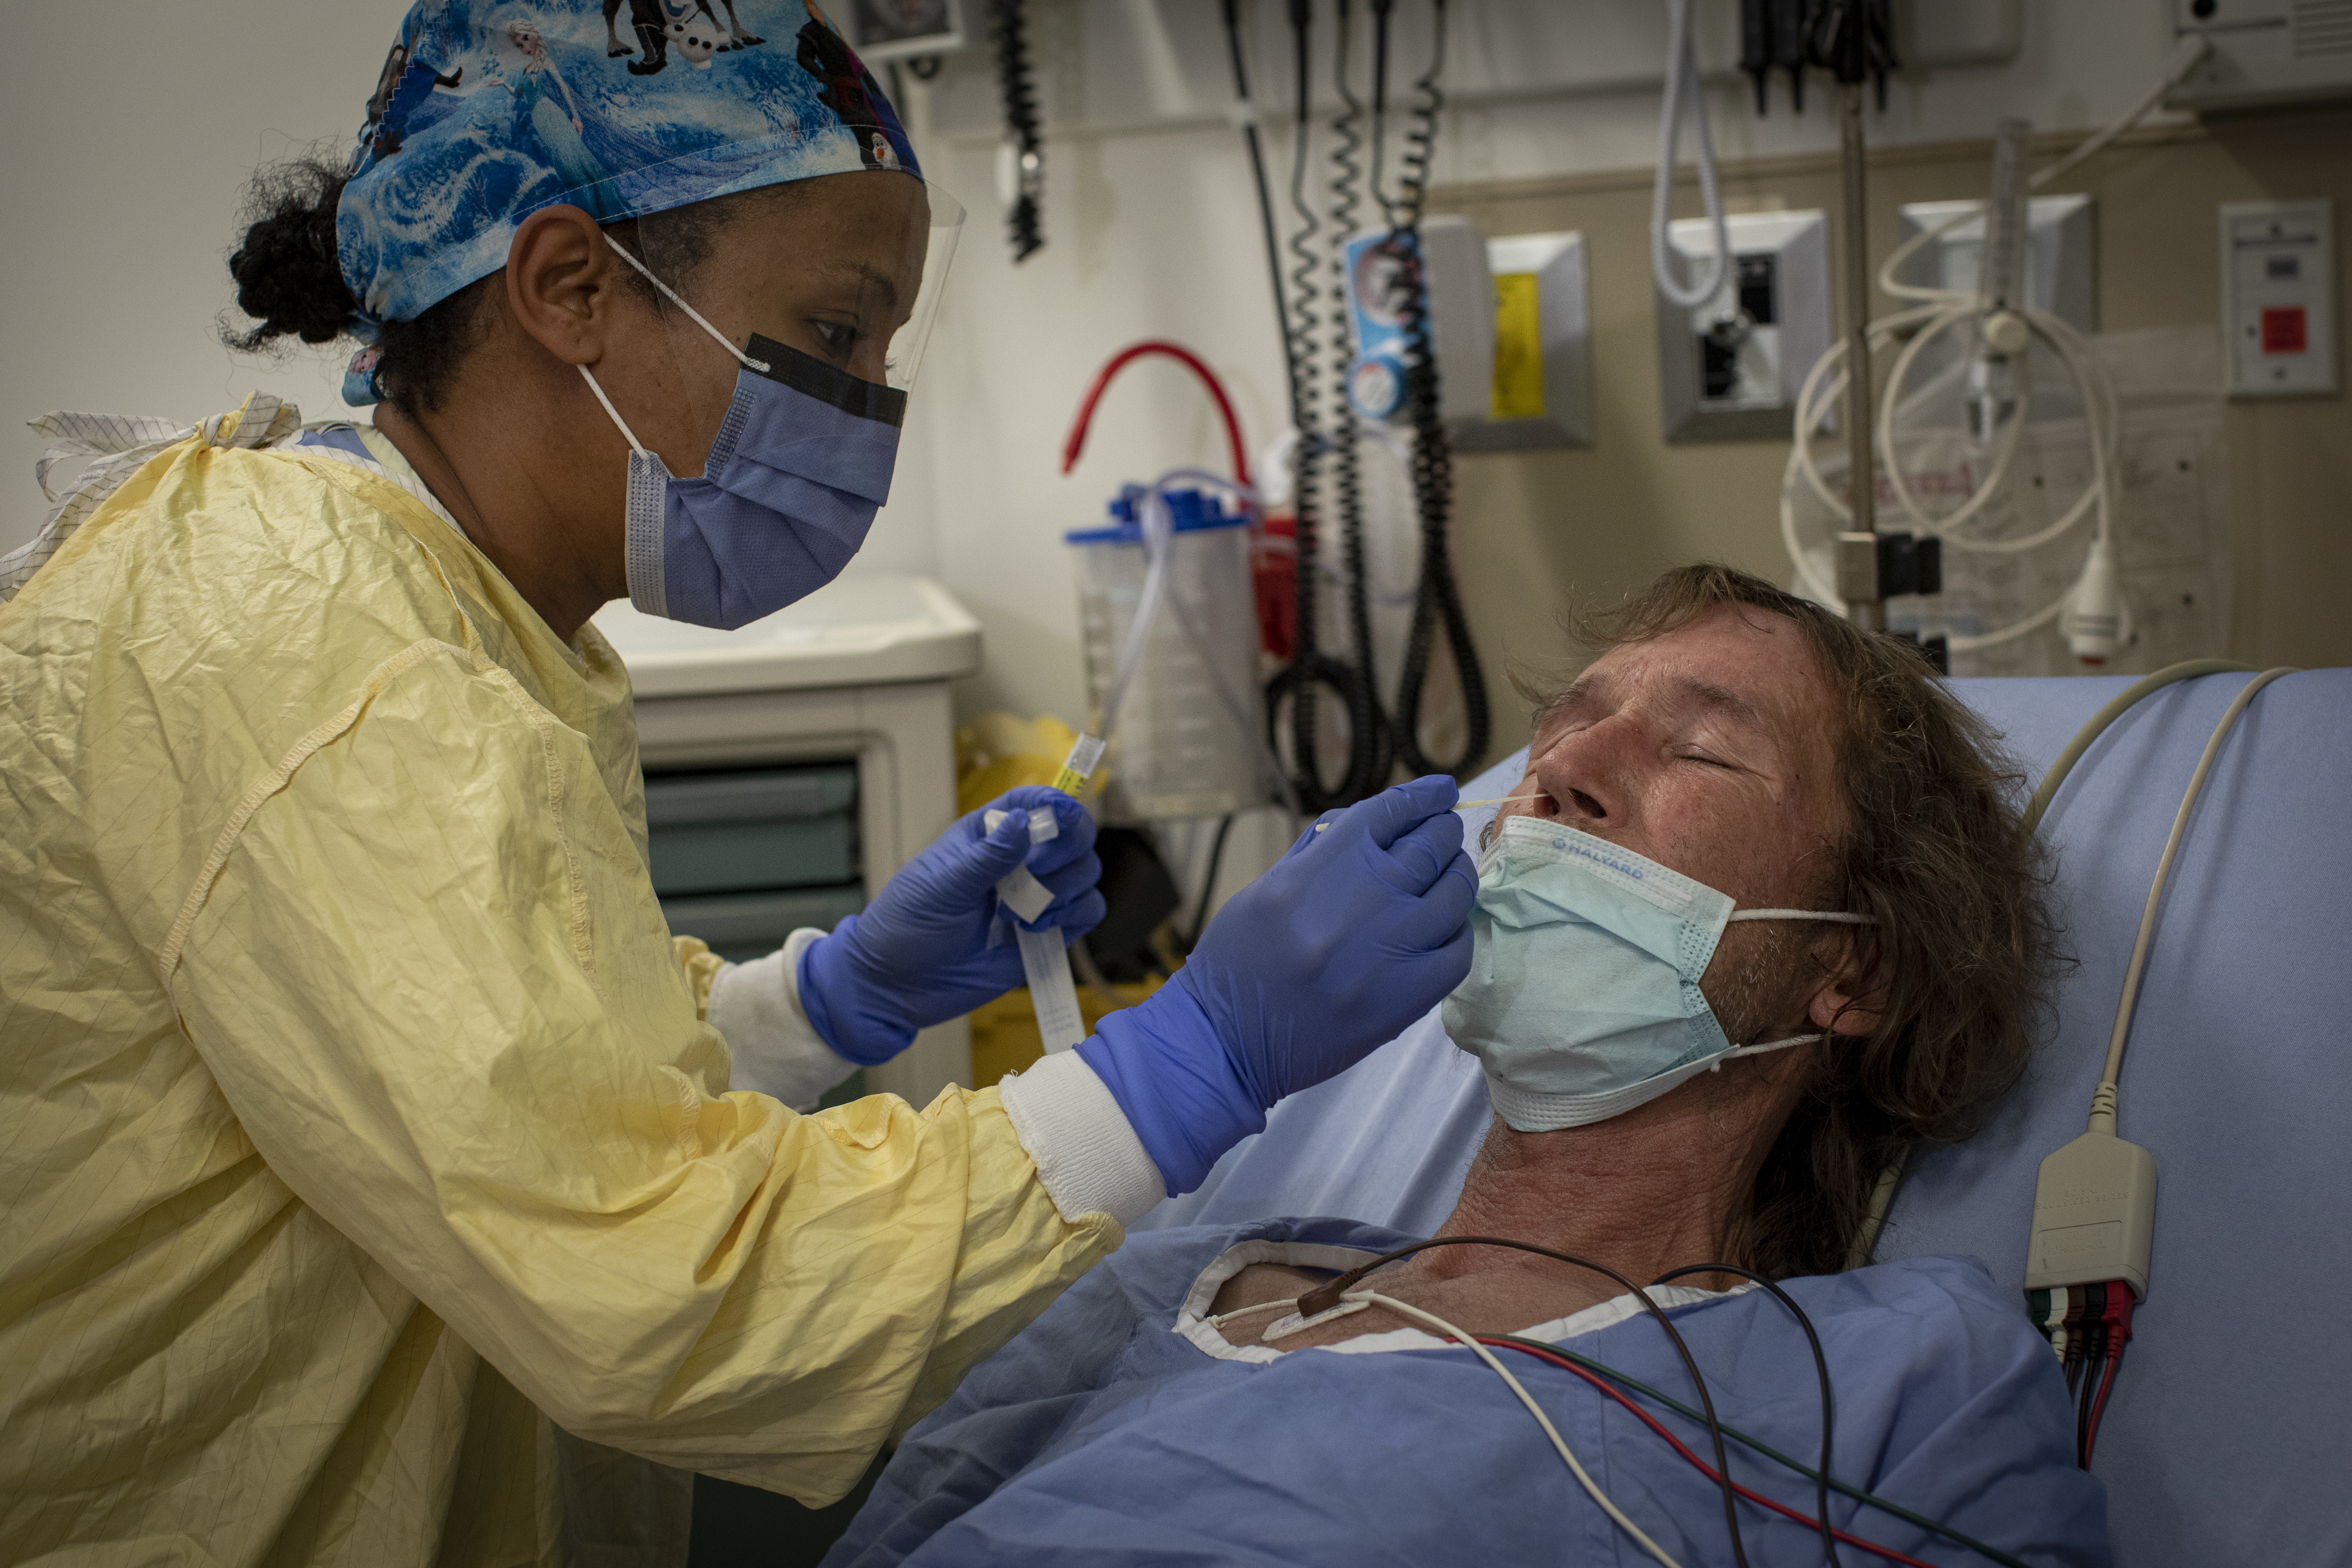 A health-care worker administers a COVID-19 swab test on 56-year-old Rick Furchner, who's in the Scarborough General emergency department because of pain caused by a blood clot. (Evan Mitsui/CBC)